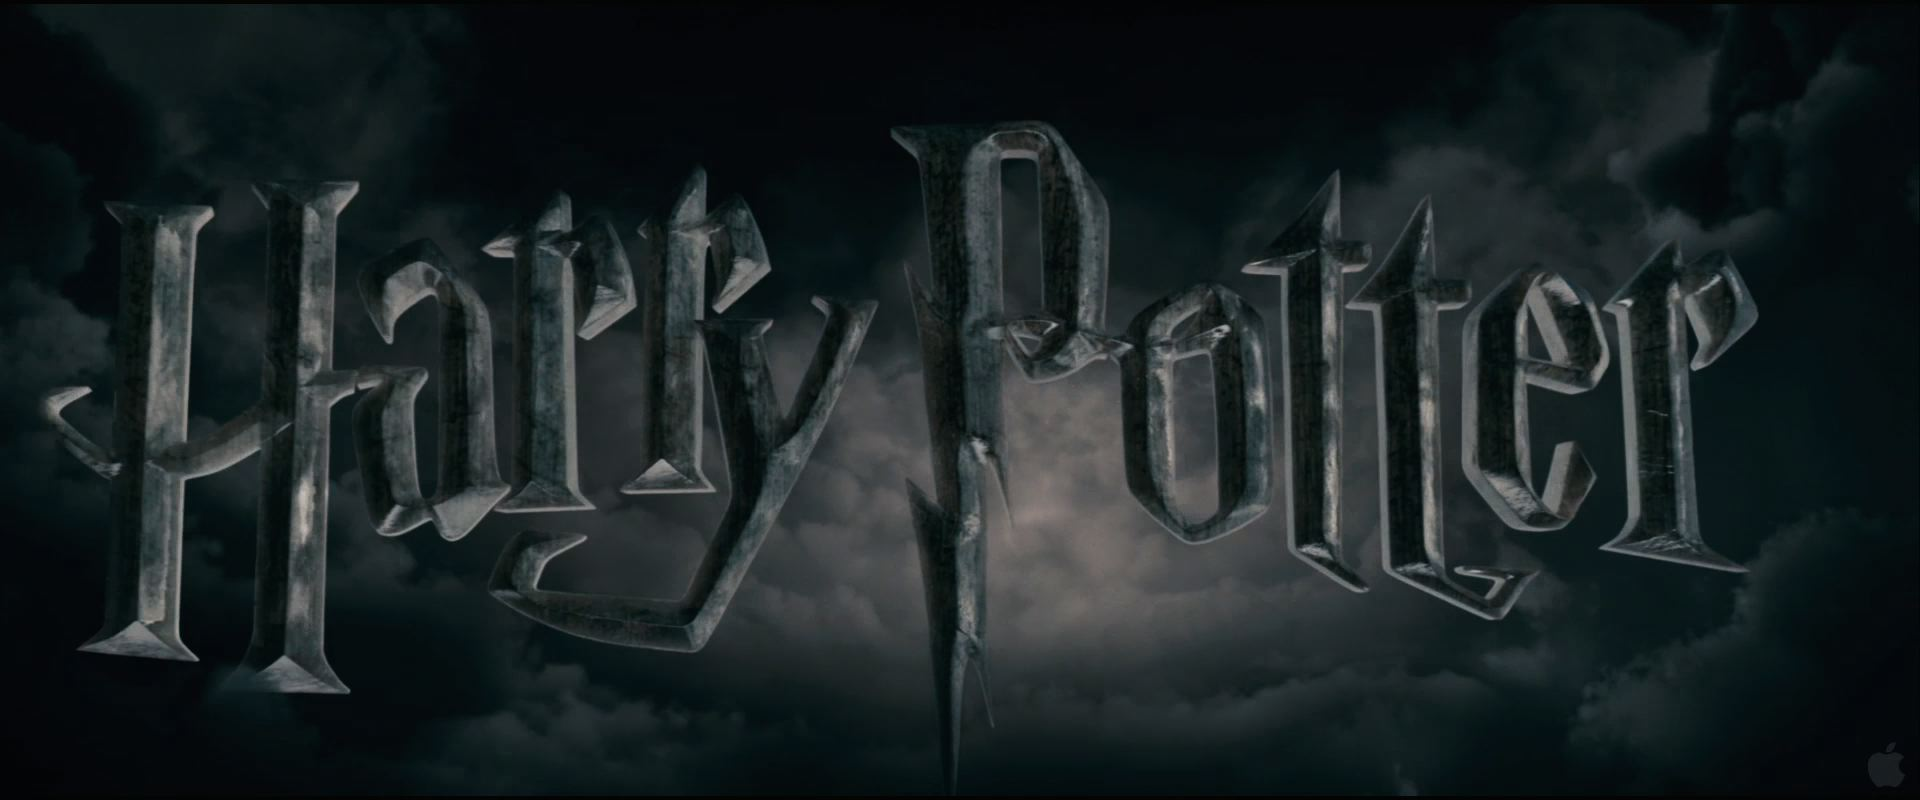 Harry-Potter-Logo-Wallpaper-HD-3